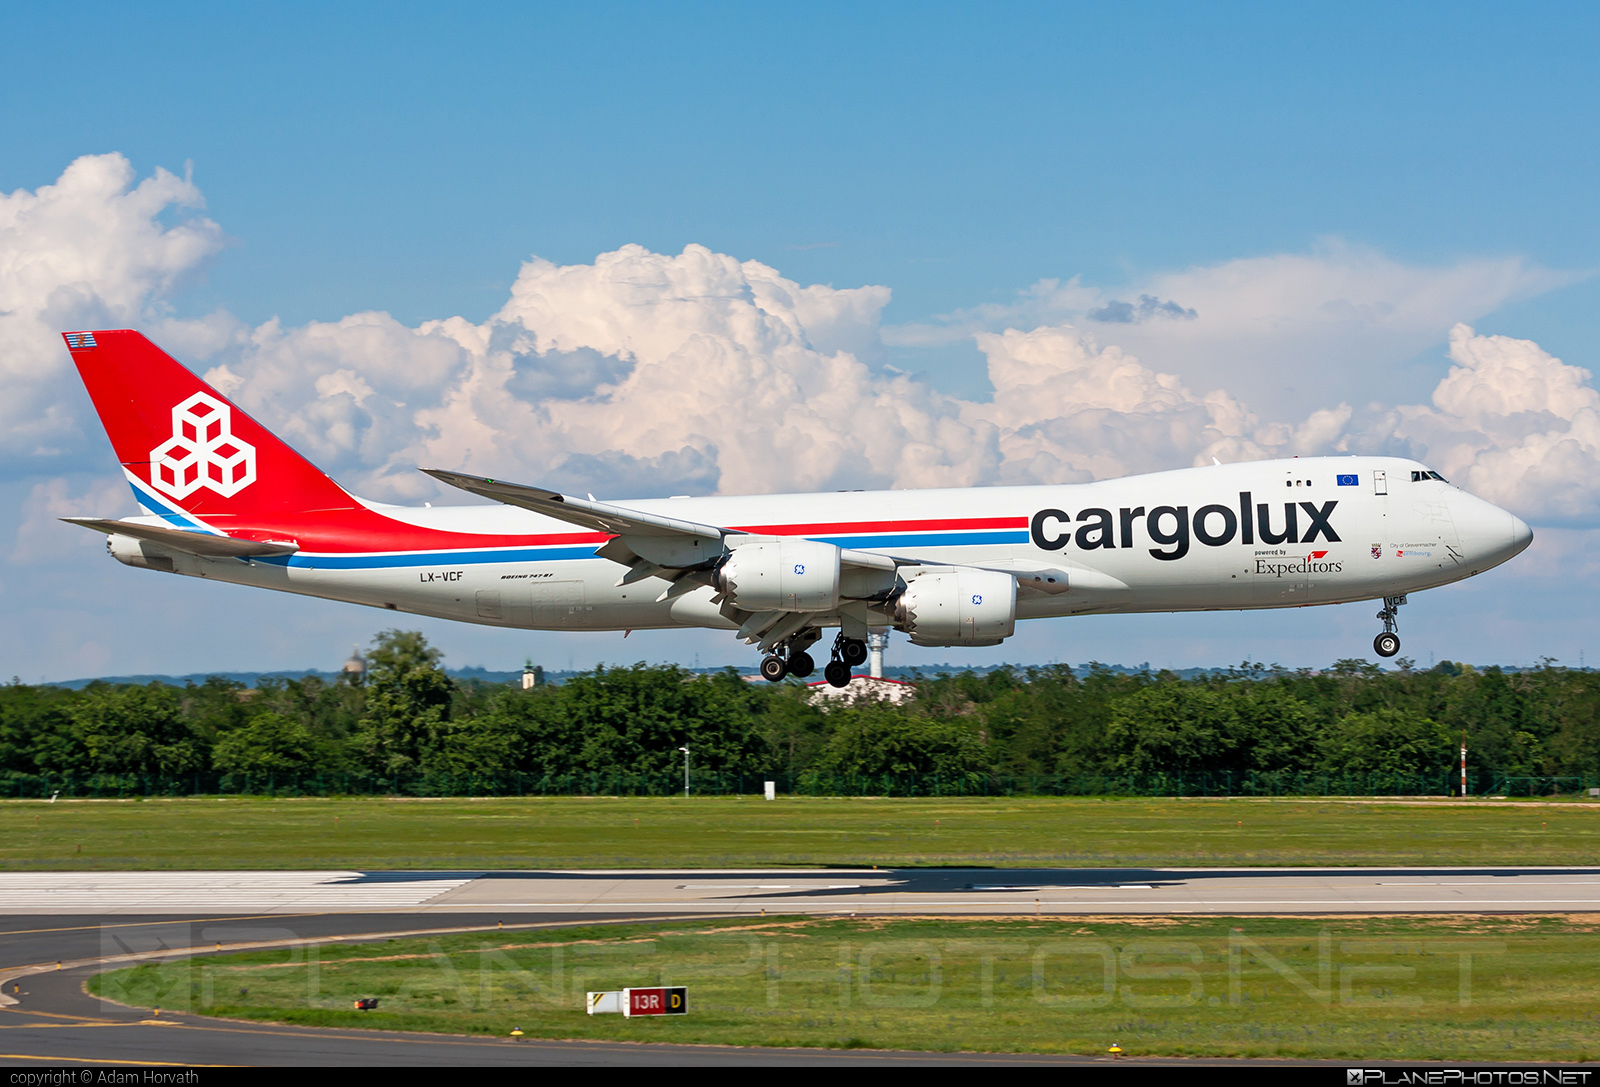 Boeing 747-8F - LX-VCF operated by Cargolux Airlines International #b747 #b747f #b747freighter #boeing #boeing747 #cargolux #jumbo